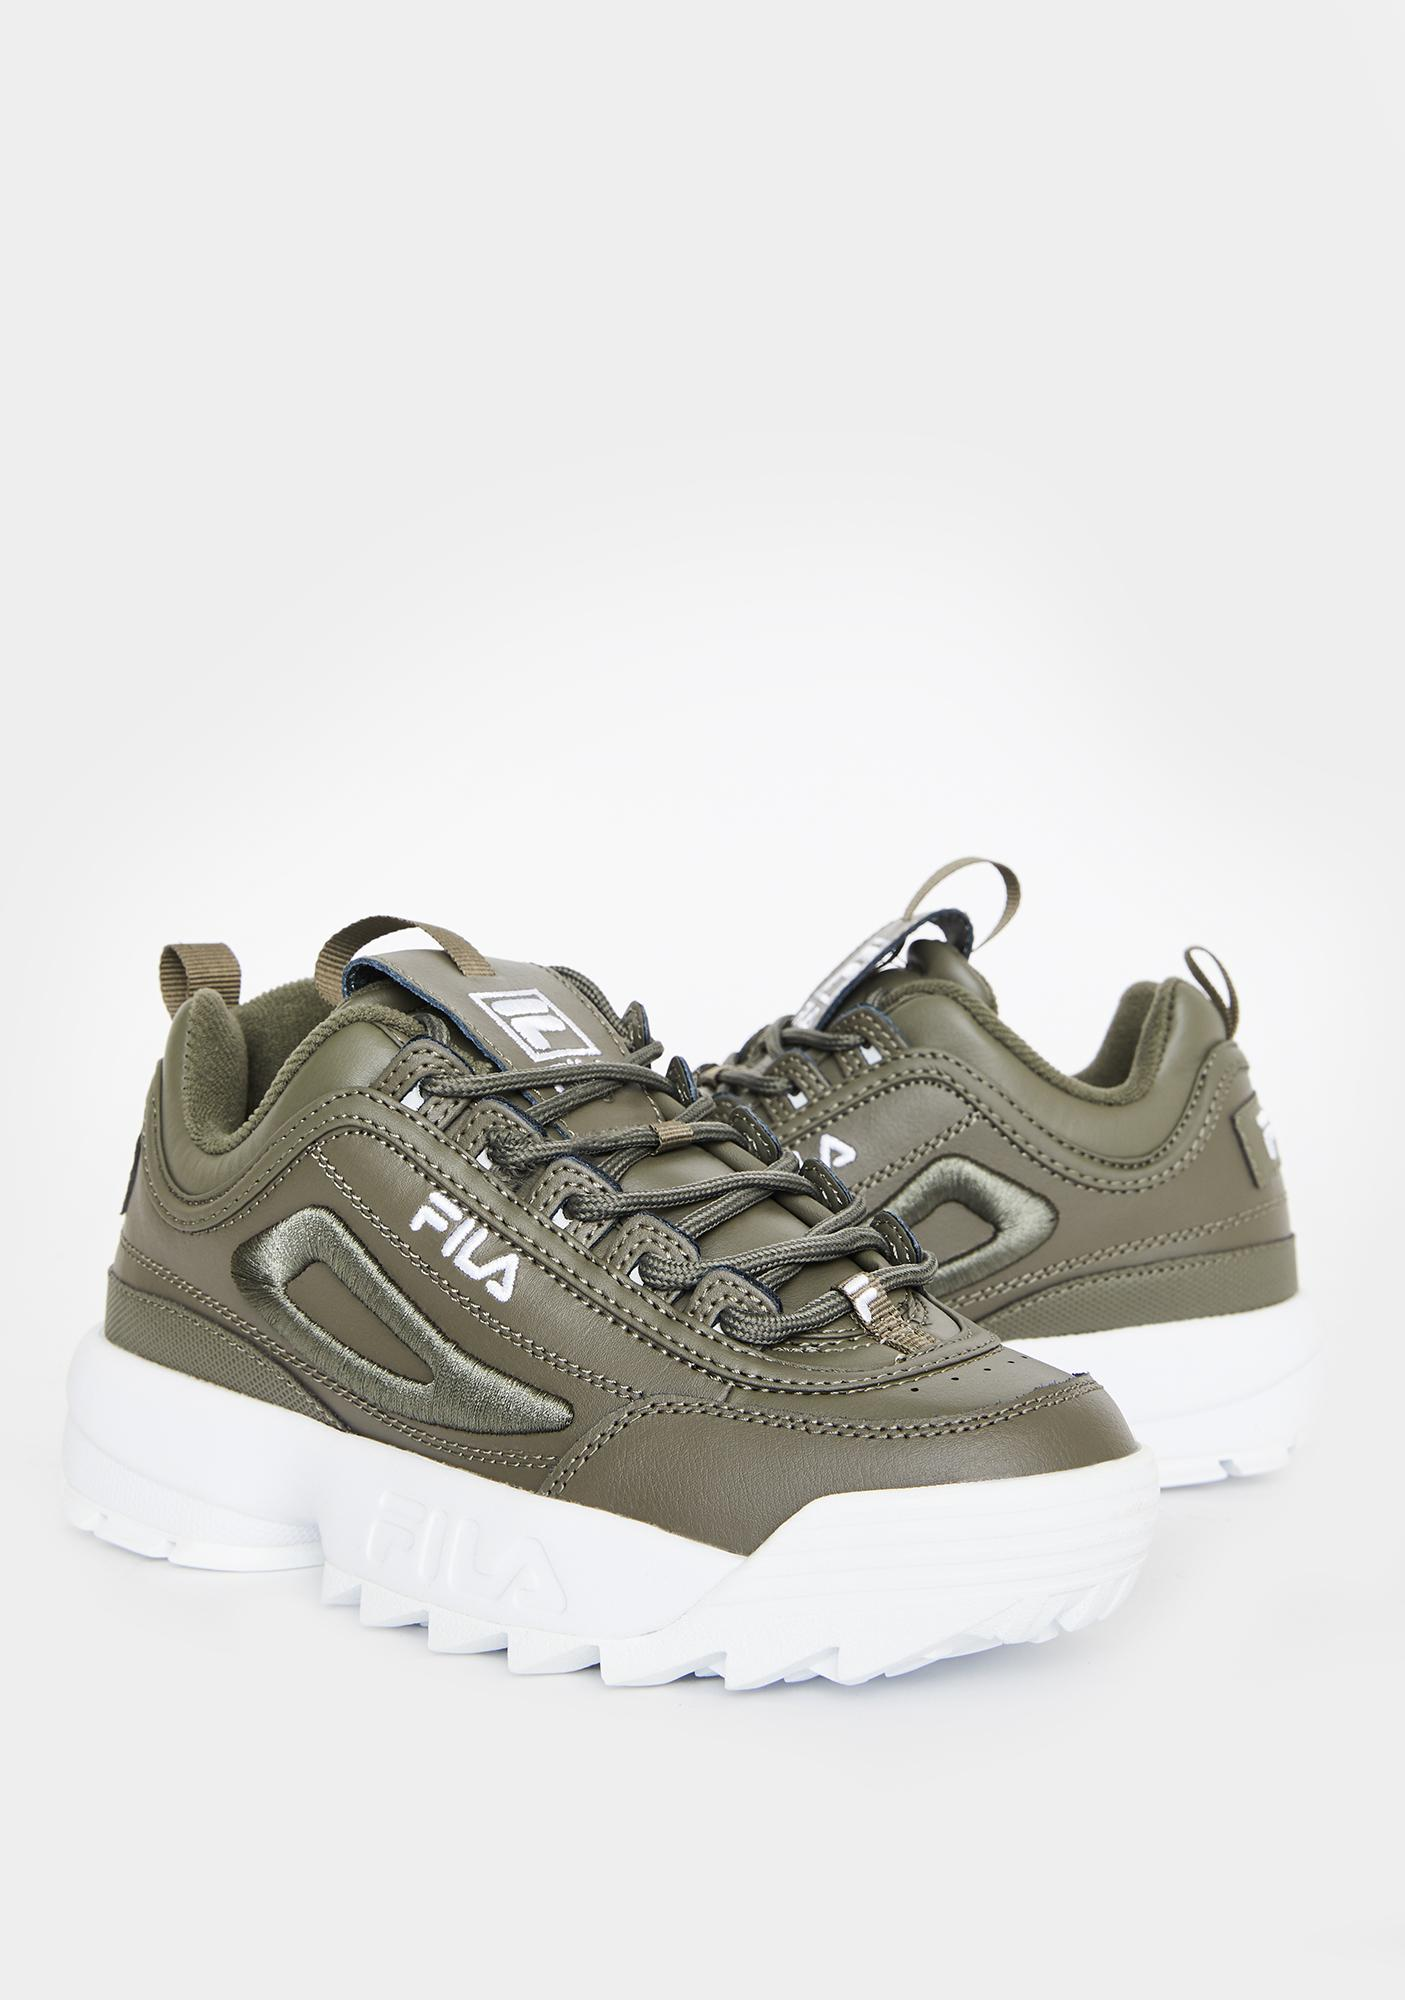 Fila Green Disruptor 2 3D Embroidered Sneakers